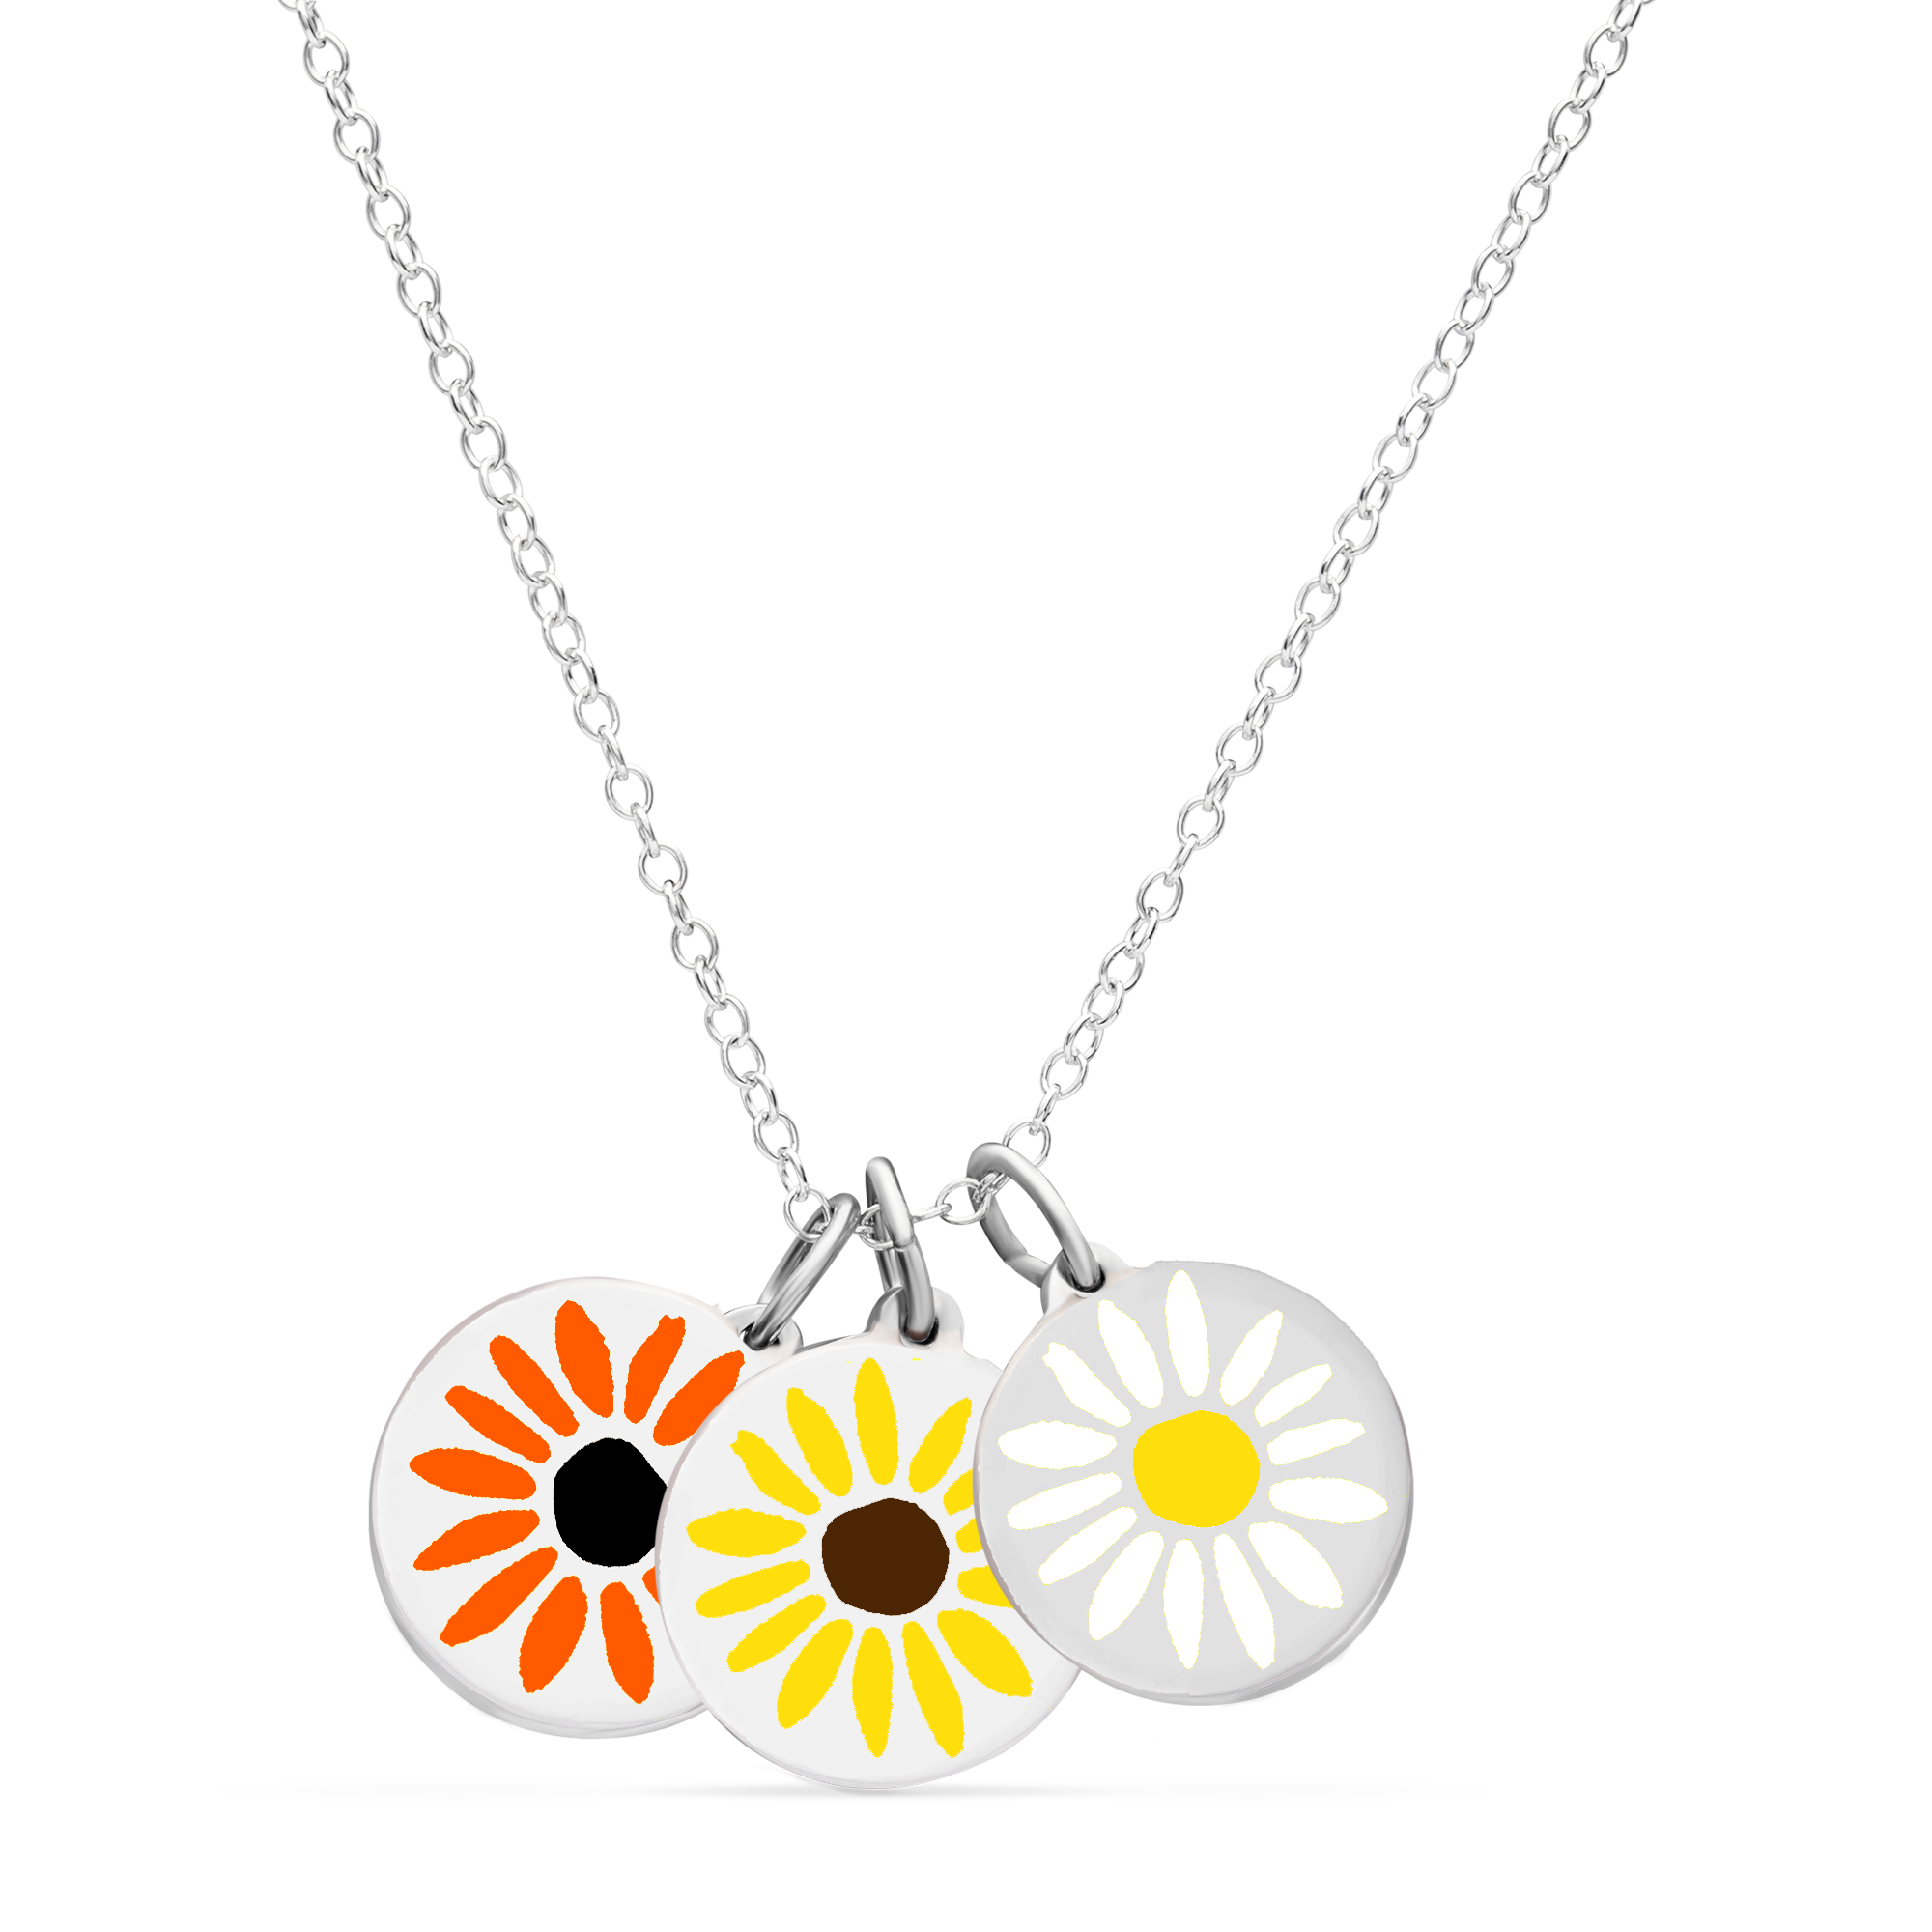 BOUQUET NECKLACE sterling silver with rhodium plate